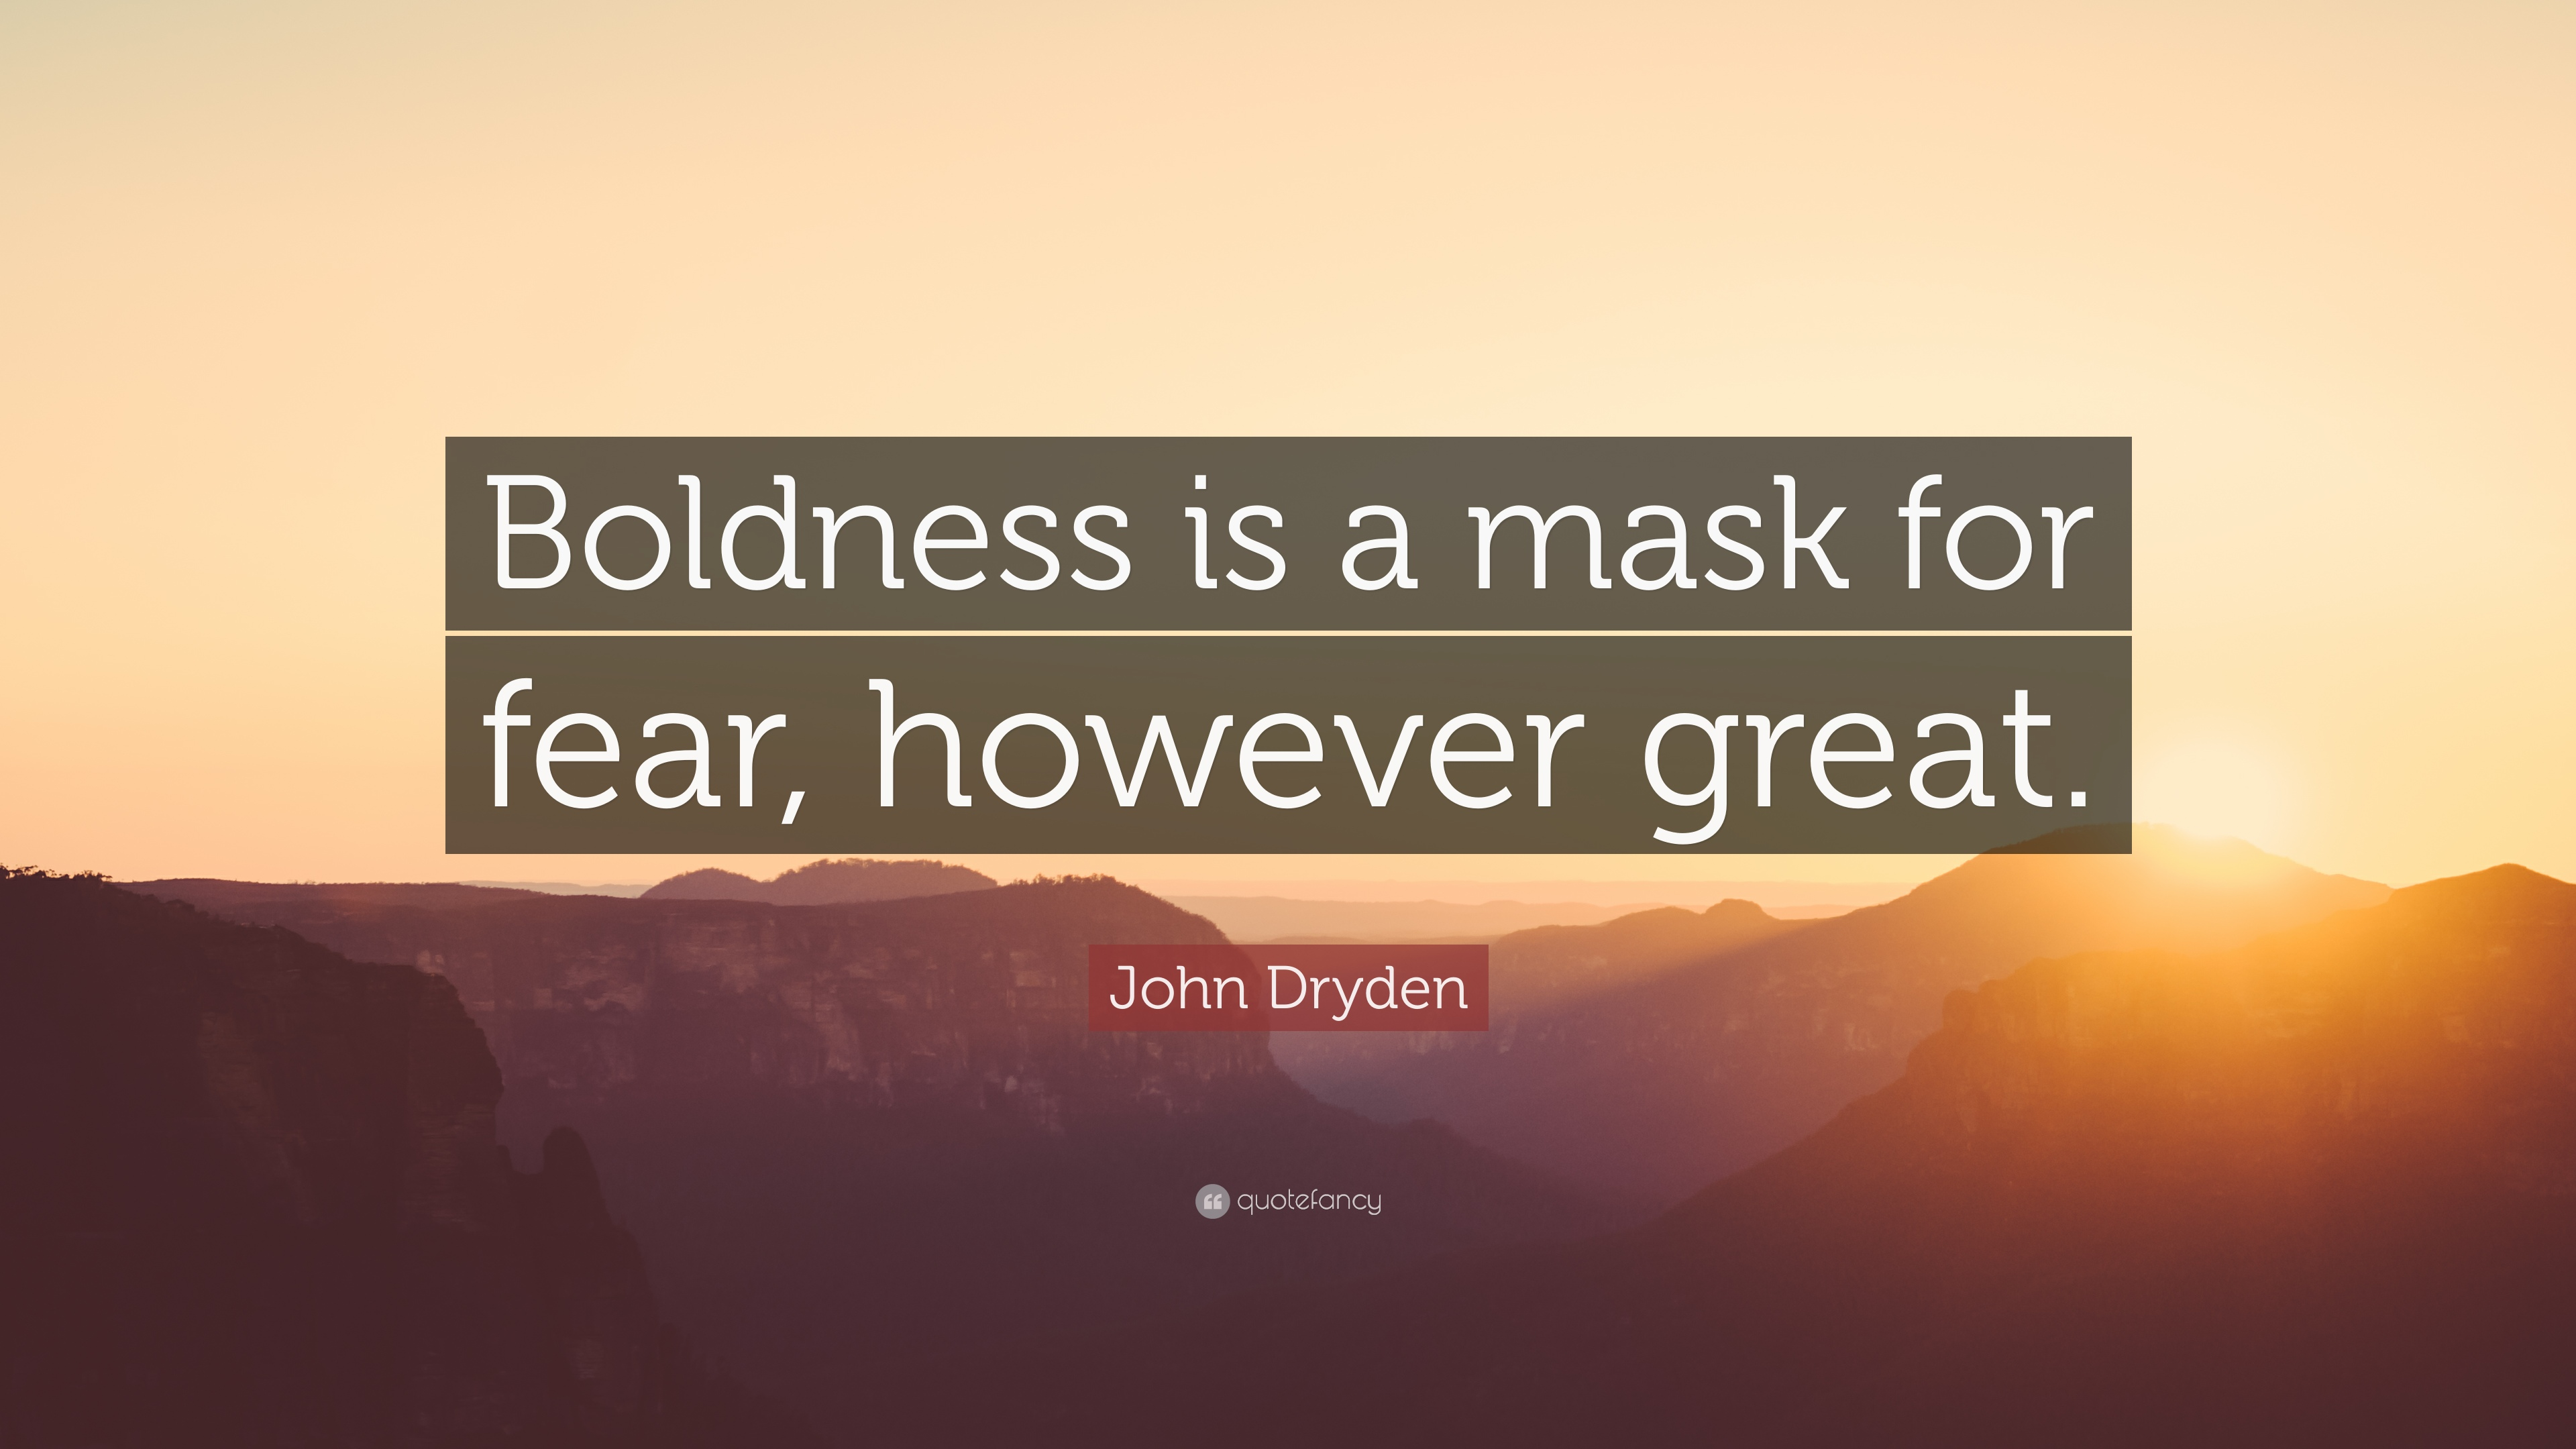 John Dryden Quote: U201cBoldness Is A Mask For Fear, However Great.u201d